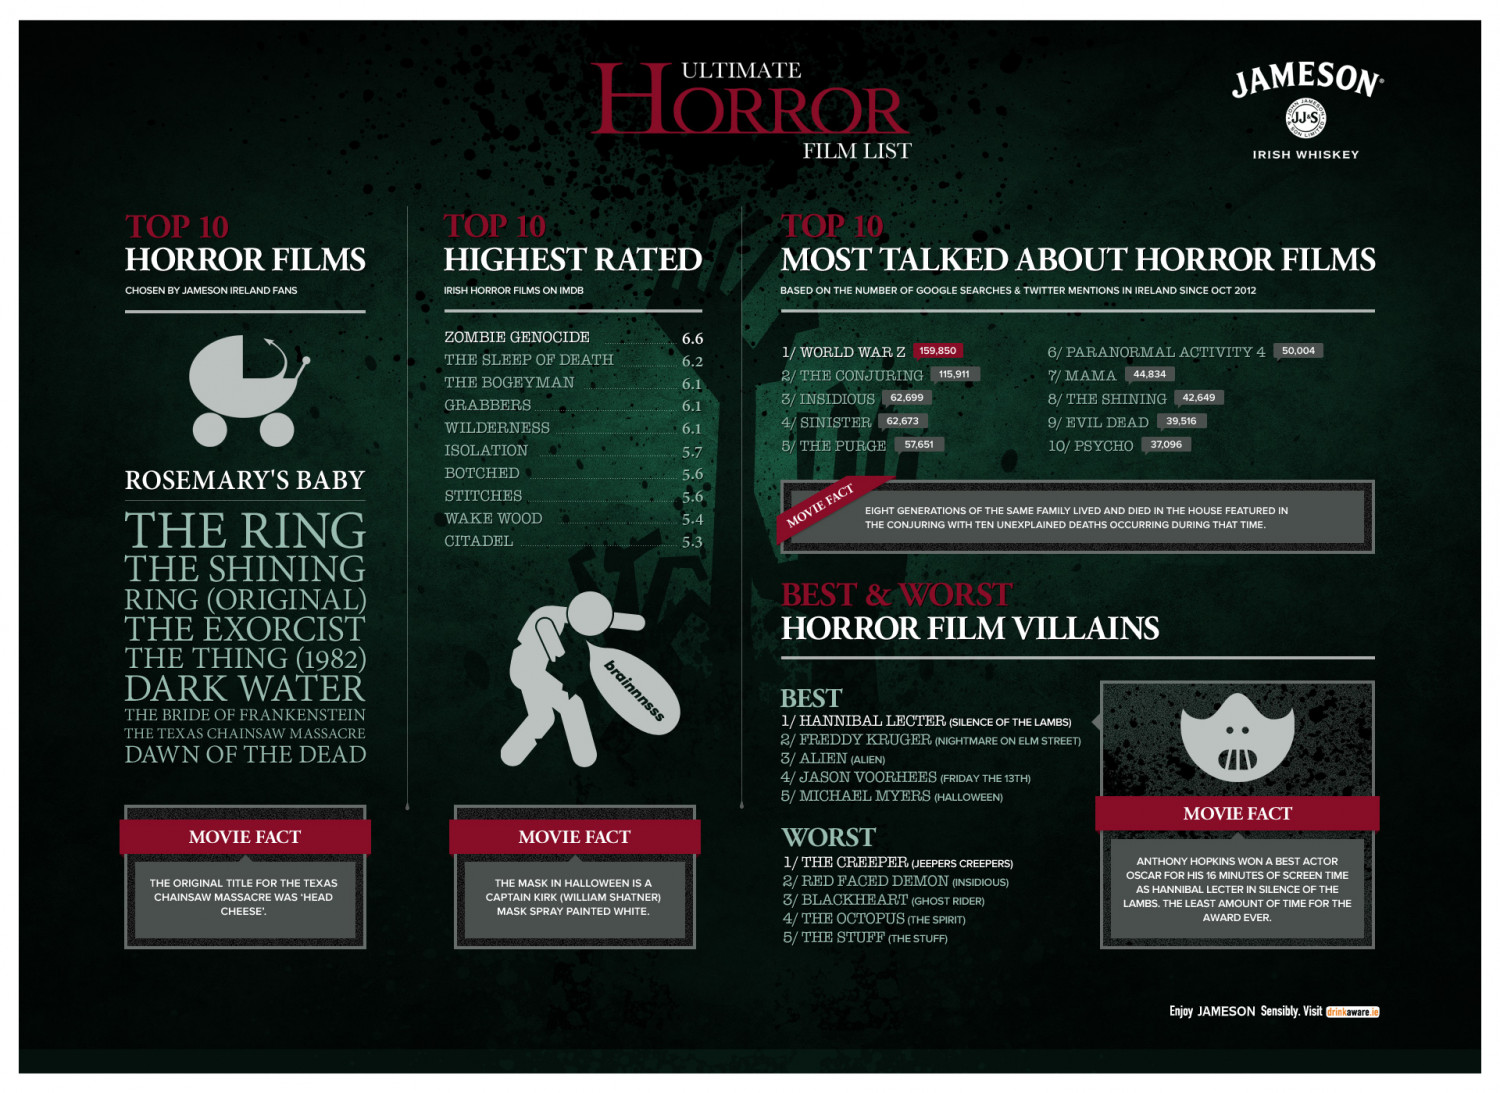 Jameson Ultimate Horror Film List Infographic